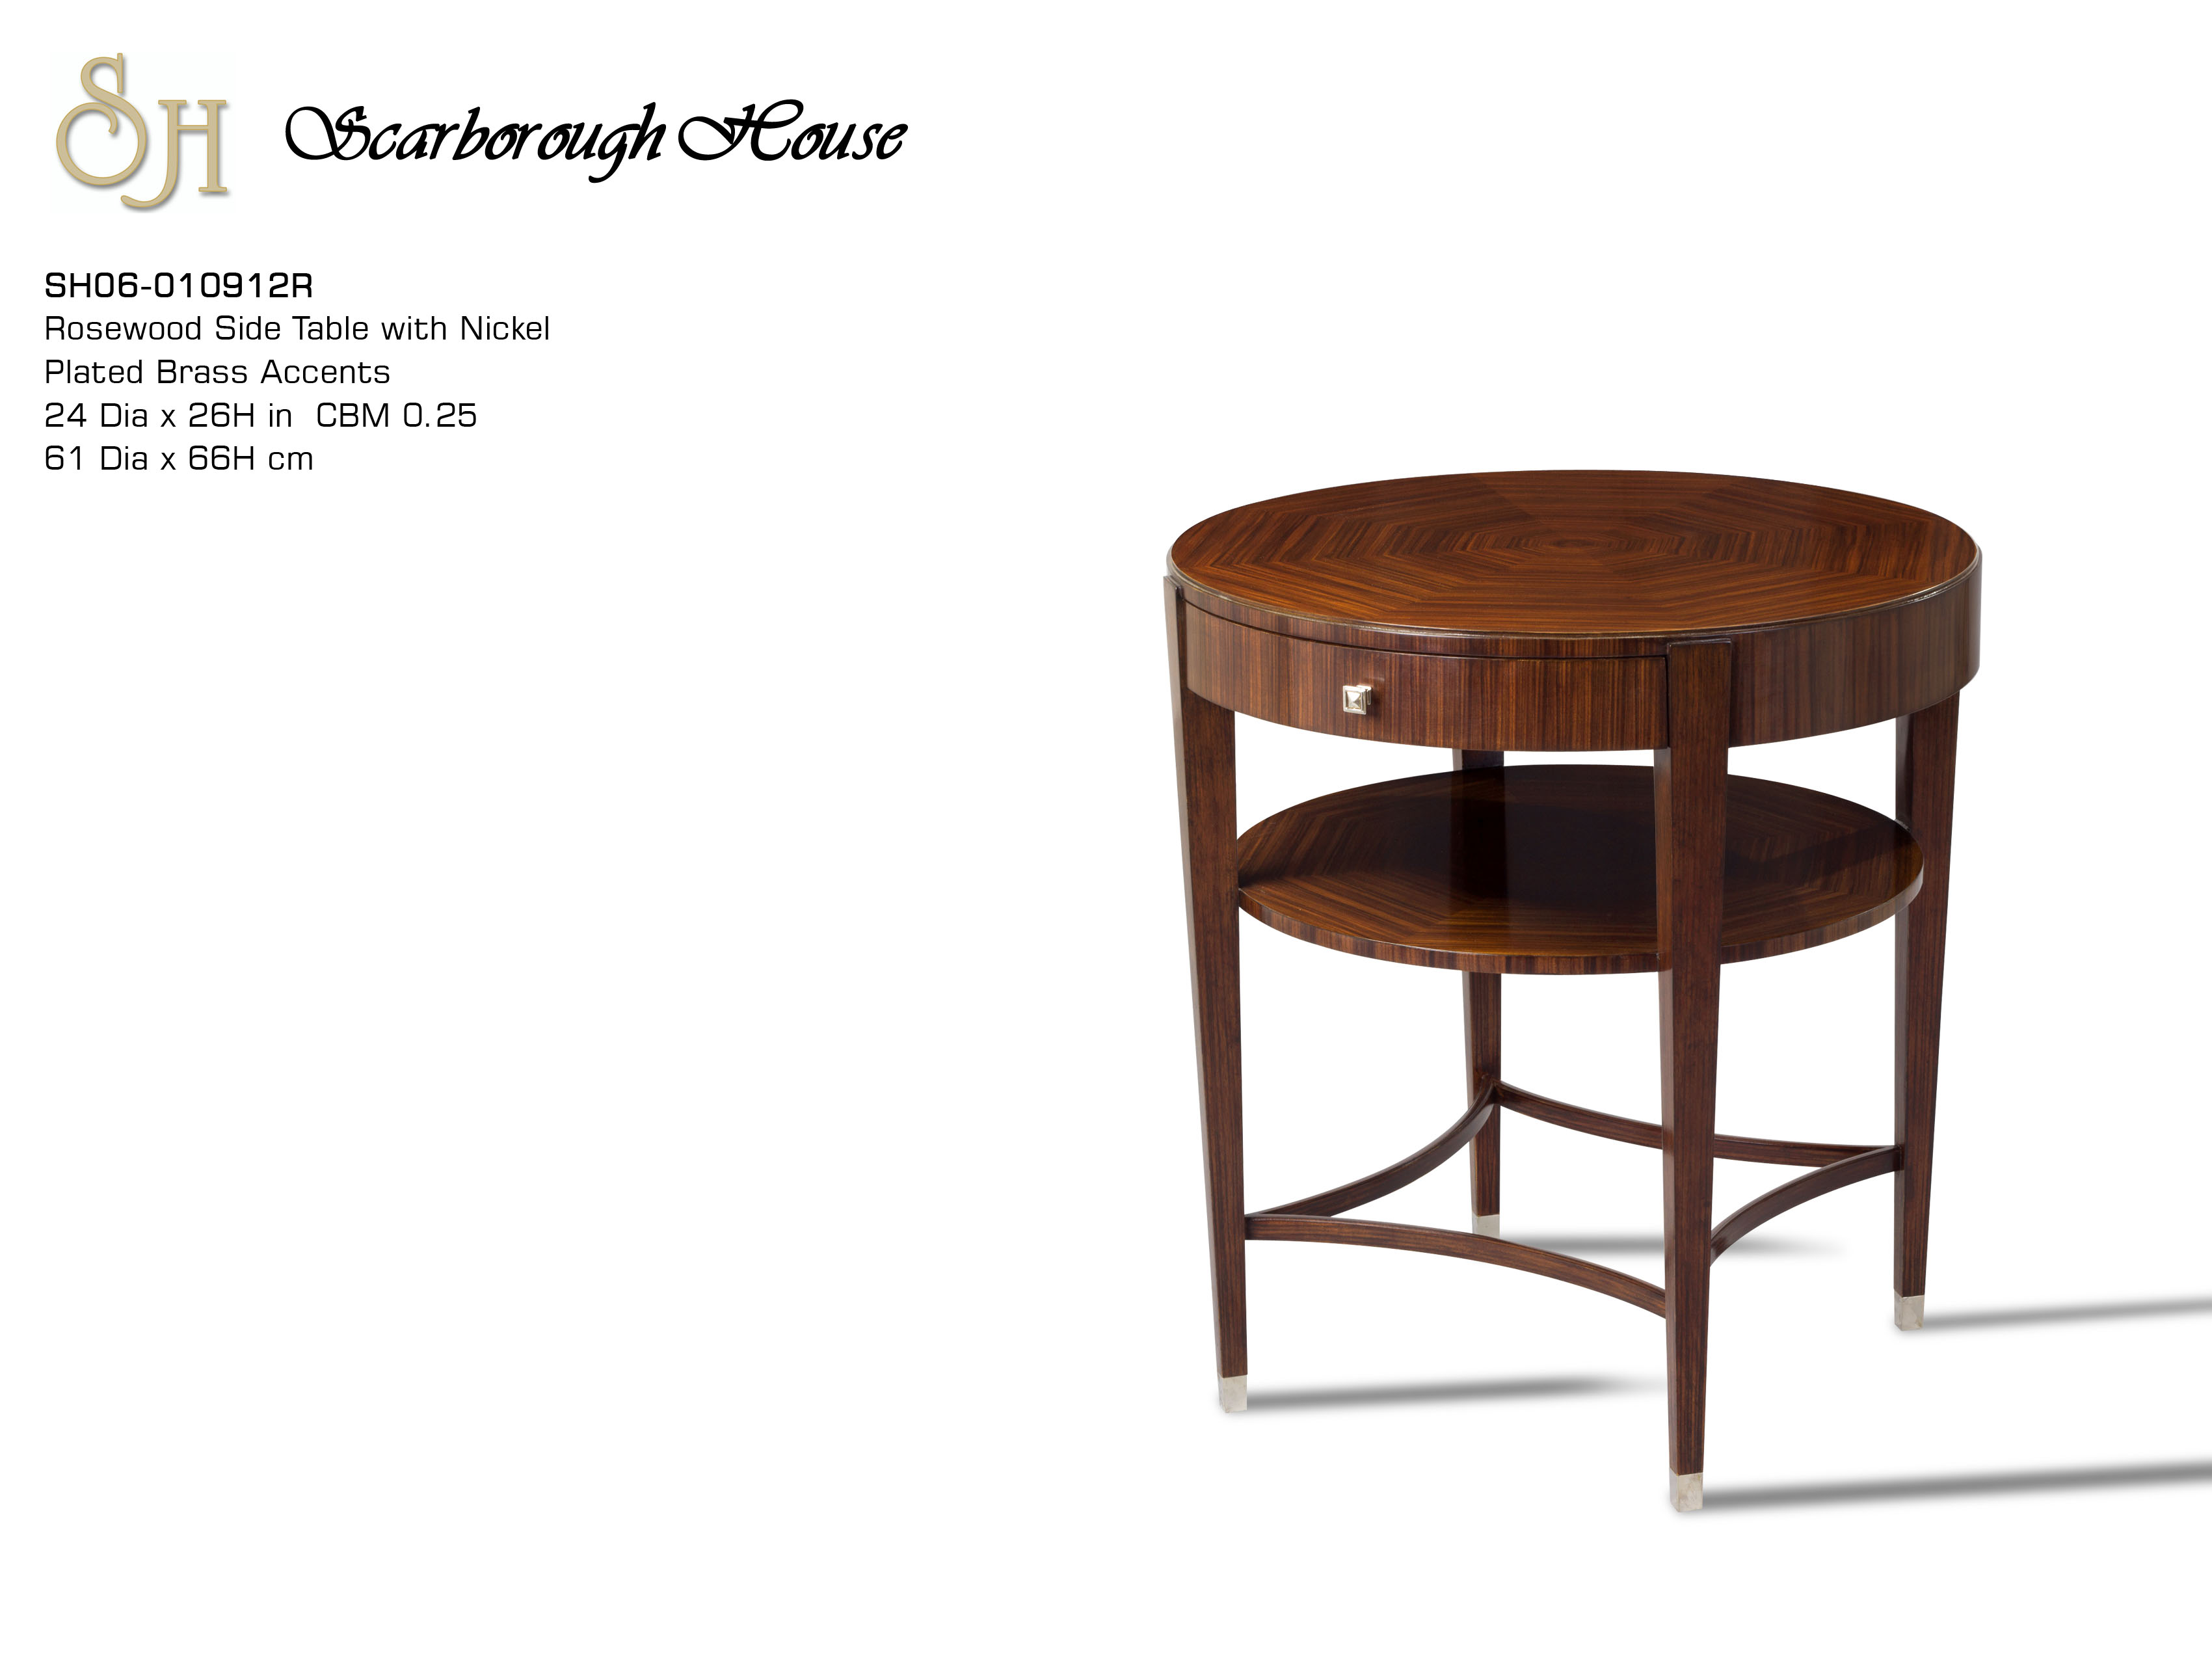 round side table scarborough house rosewood accent click here for printable lime green thrive furniture small outdoor seating rechargeable lamps home ikea floating shelves height